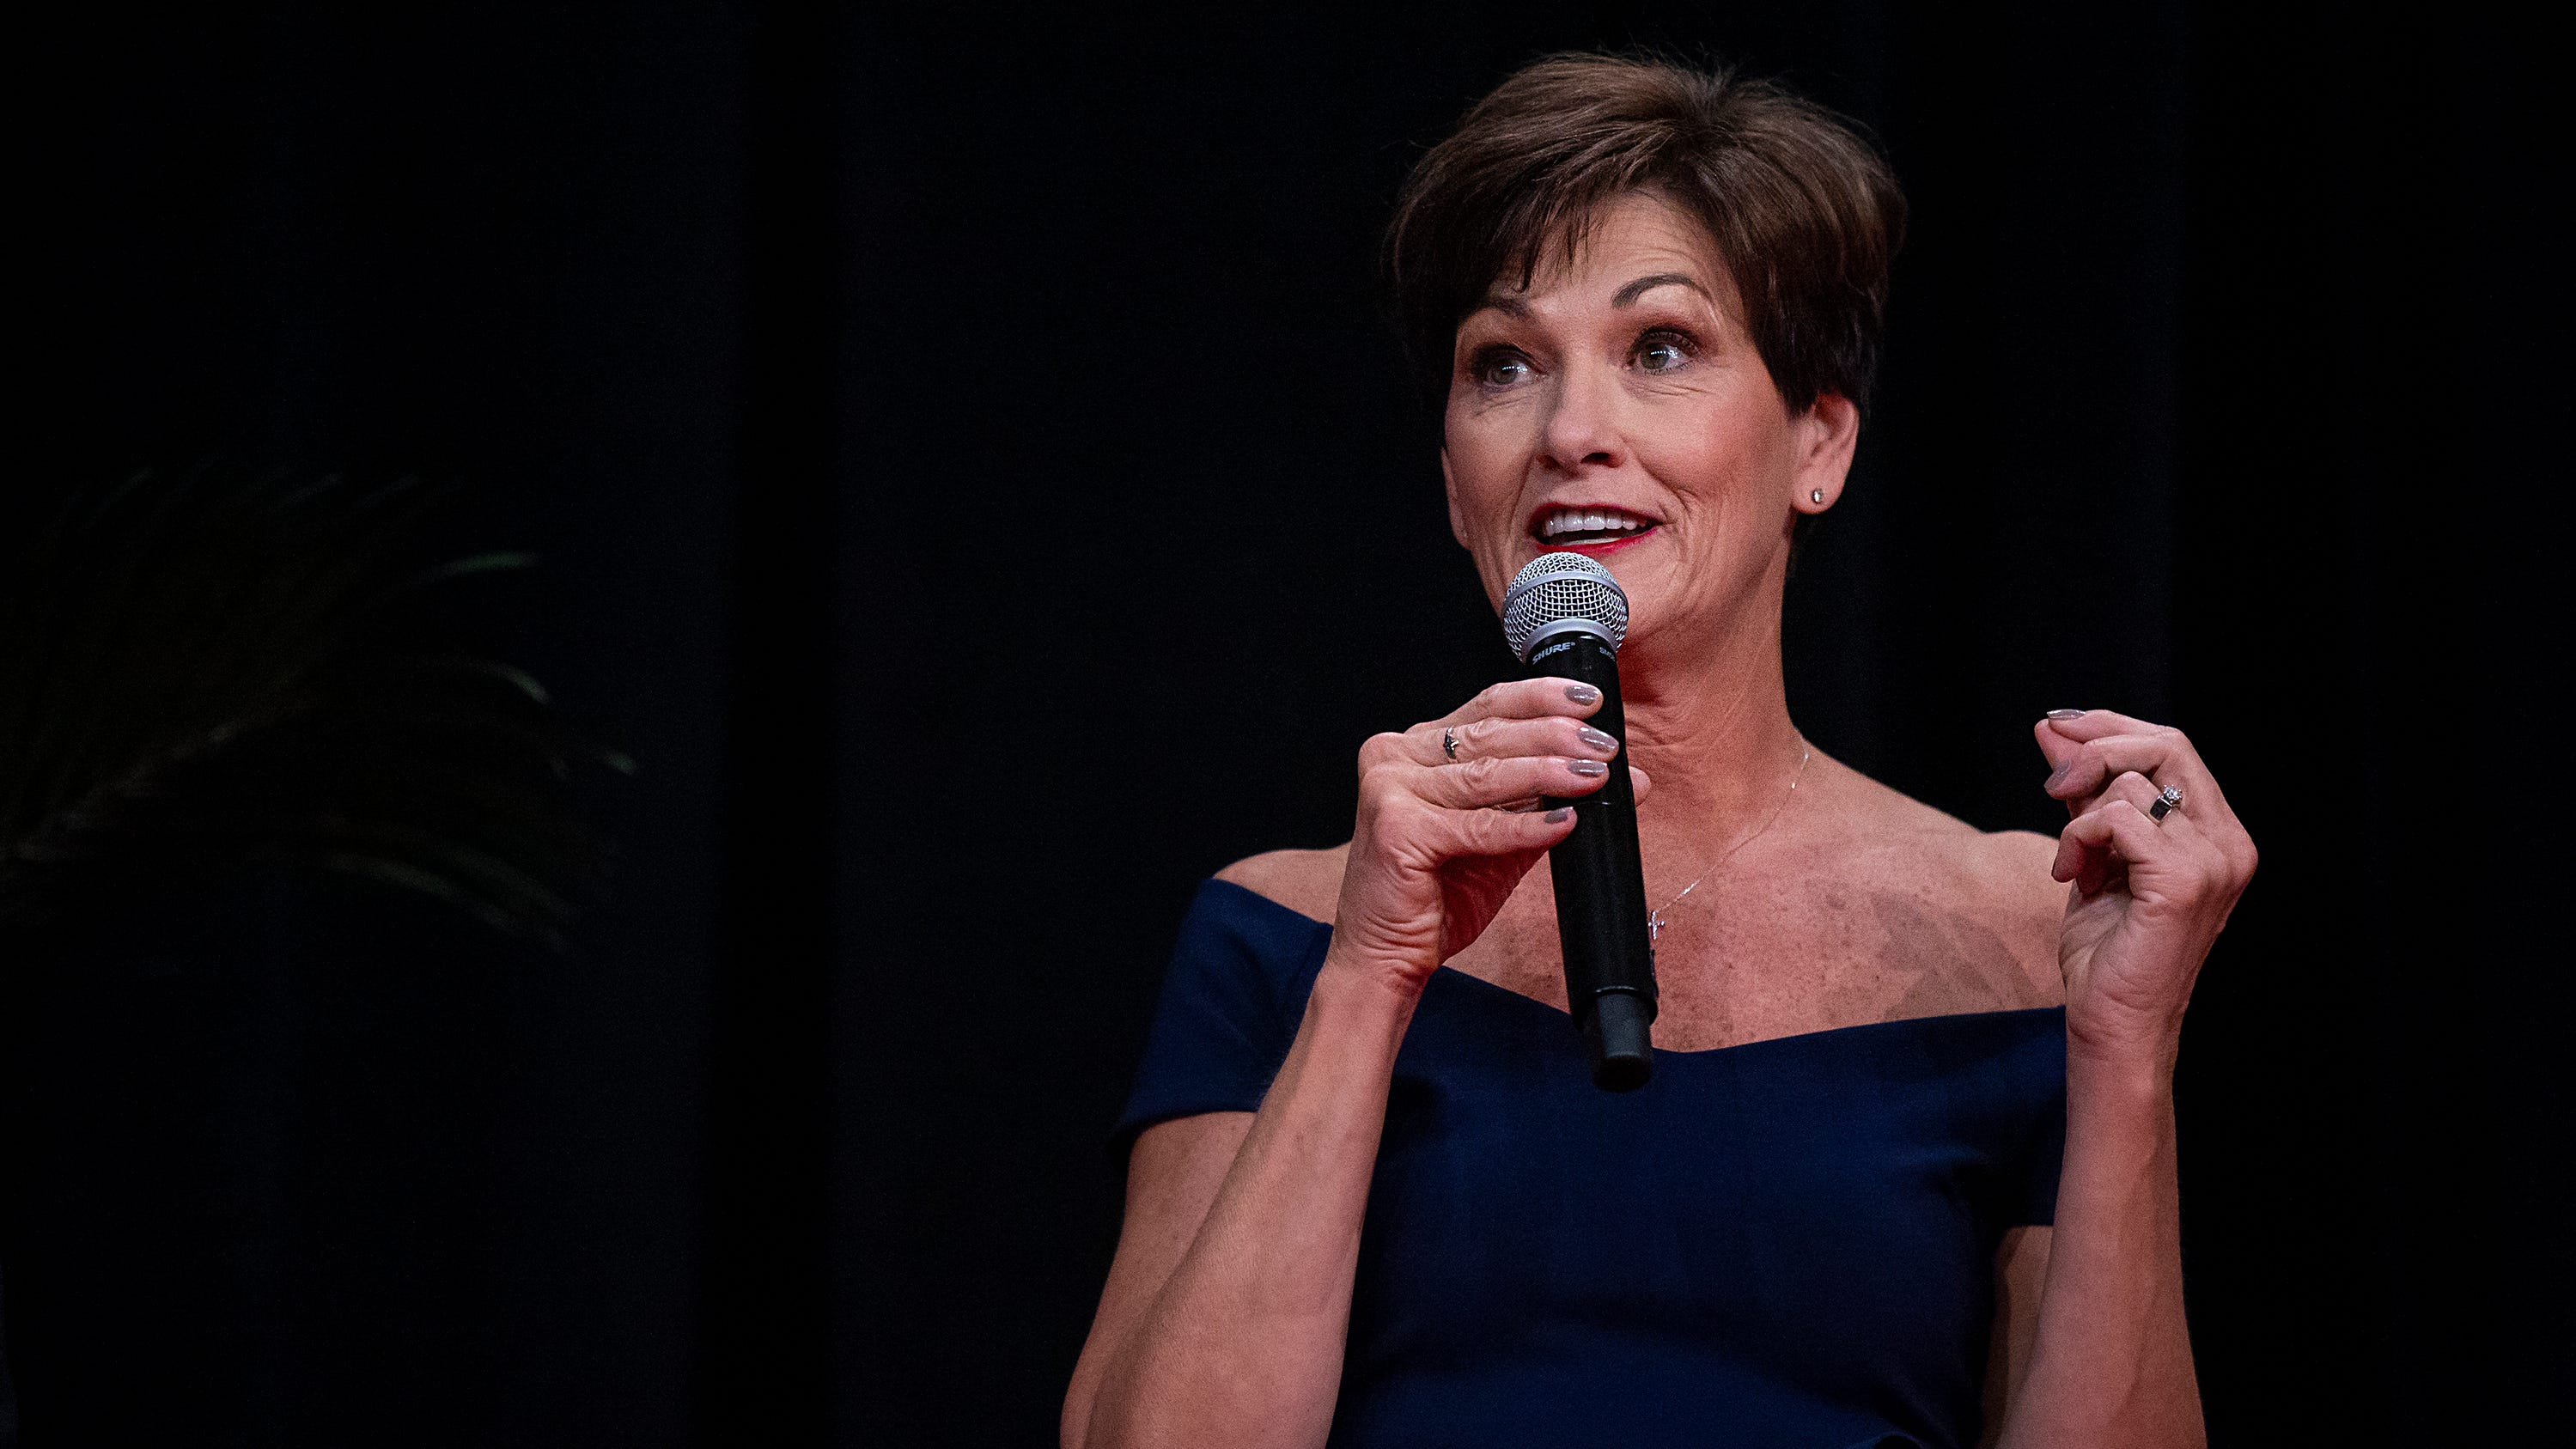 Gov. Kim Reynolds gives a short speech at her inaugural ball on Friday, Jan. 18, 2019, in Des Moines.